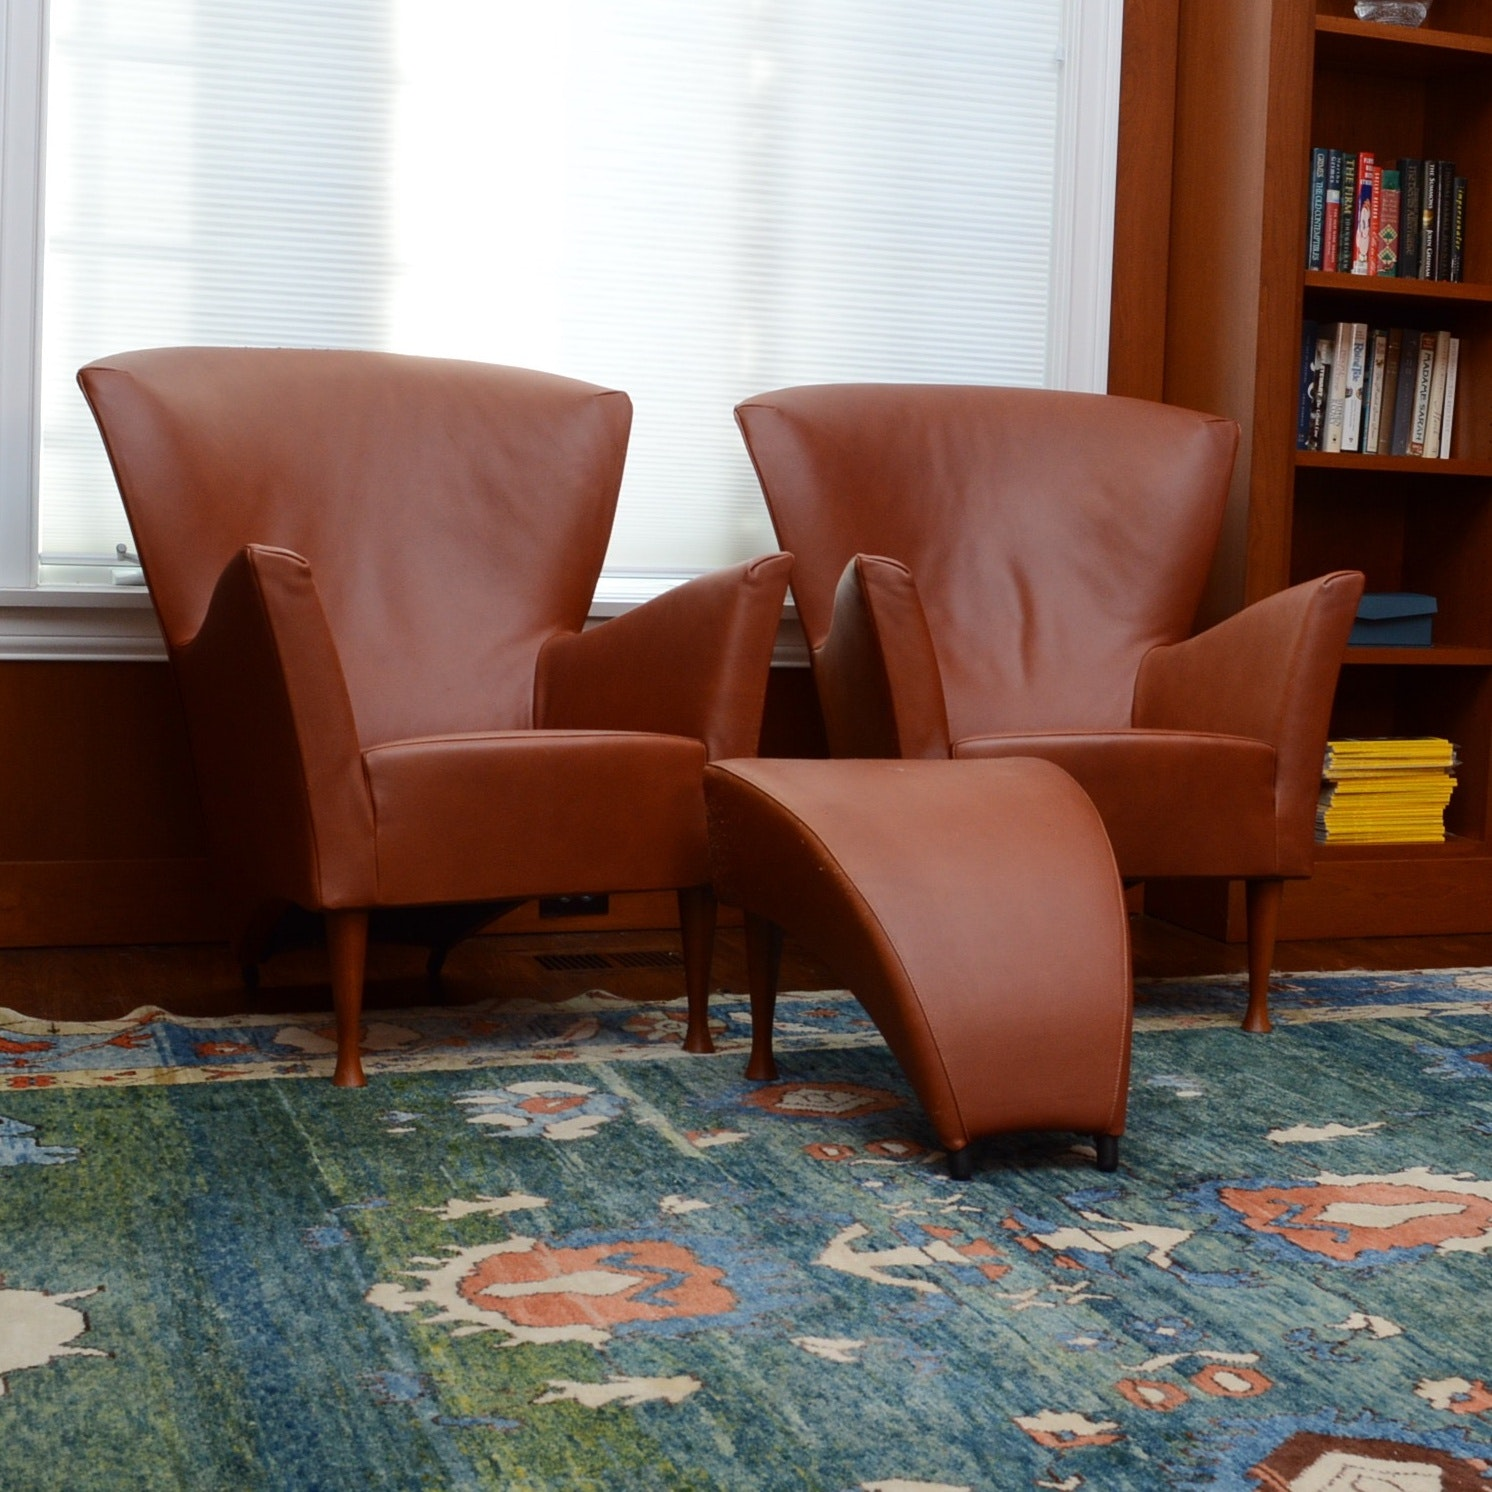 Pair of Contemporary Leather Chairs with Footstool